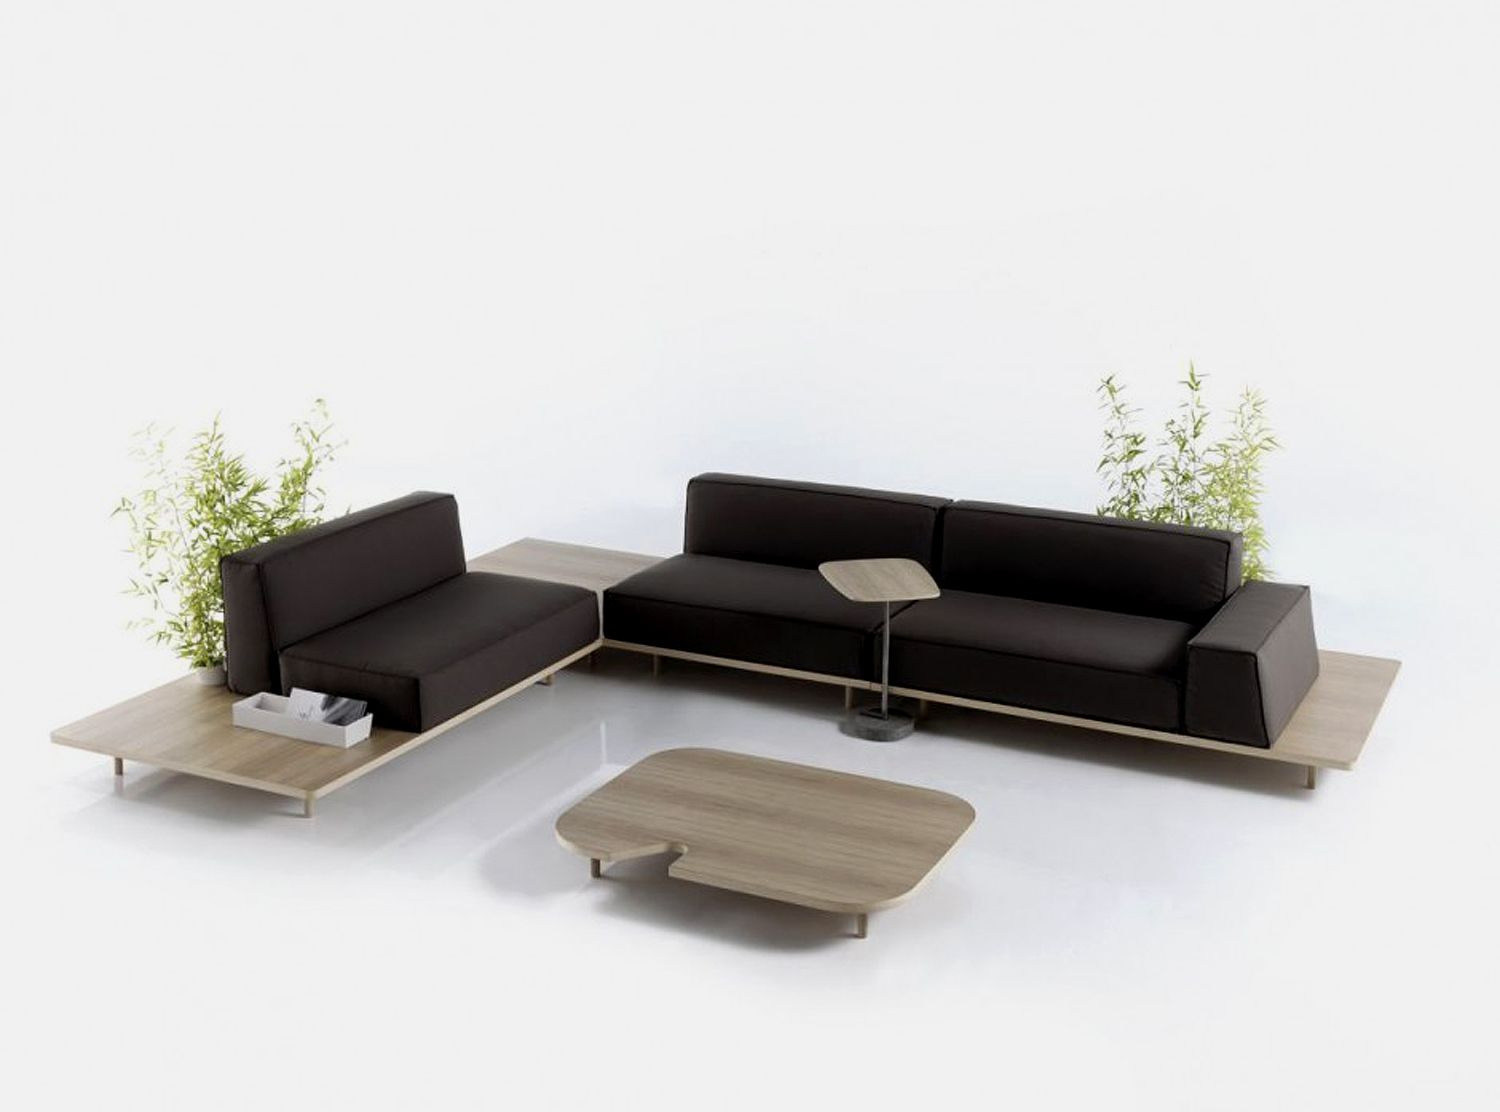 Superbe Mobilier Design Contemporain 9